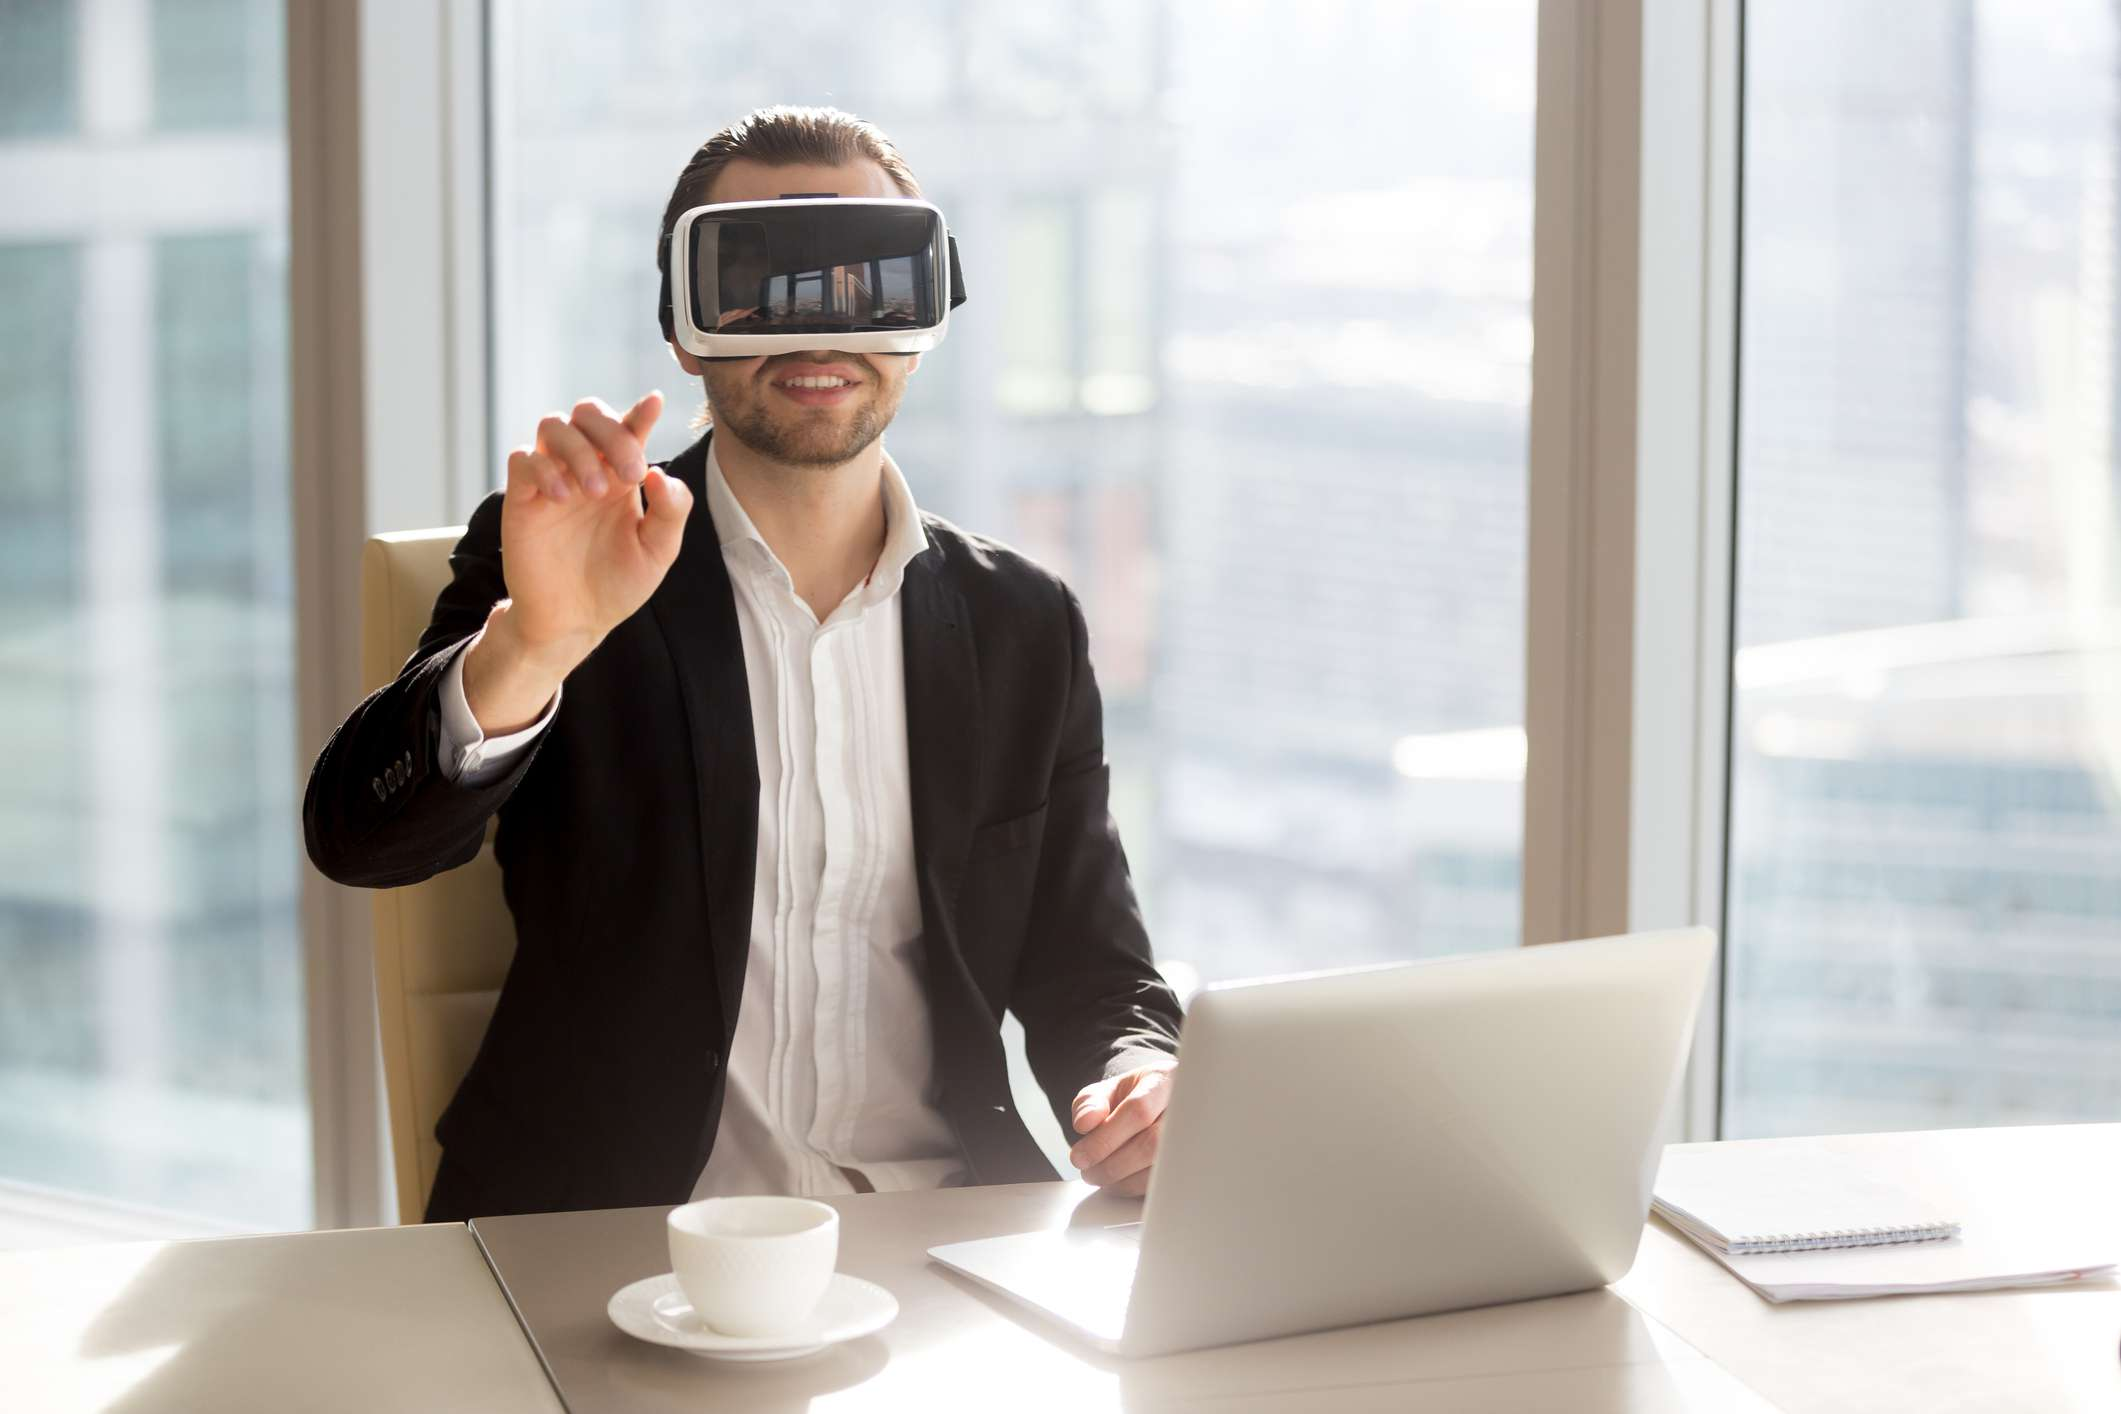 Man in VR headset touching virtual objects